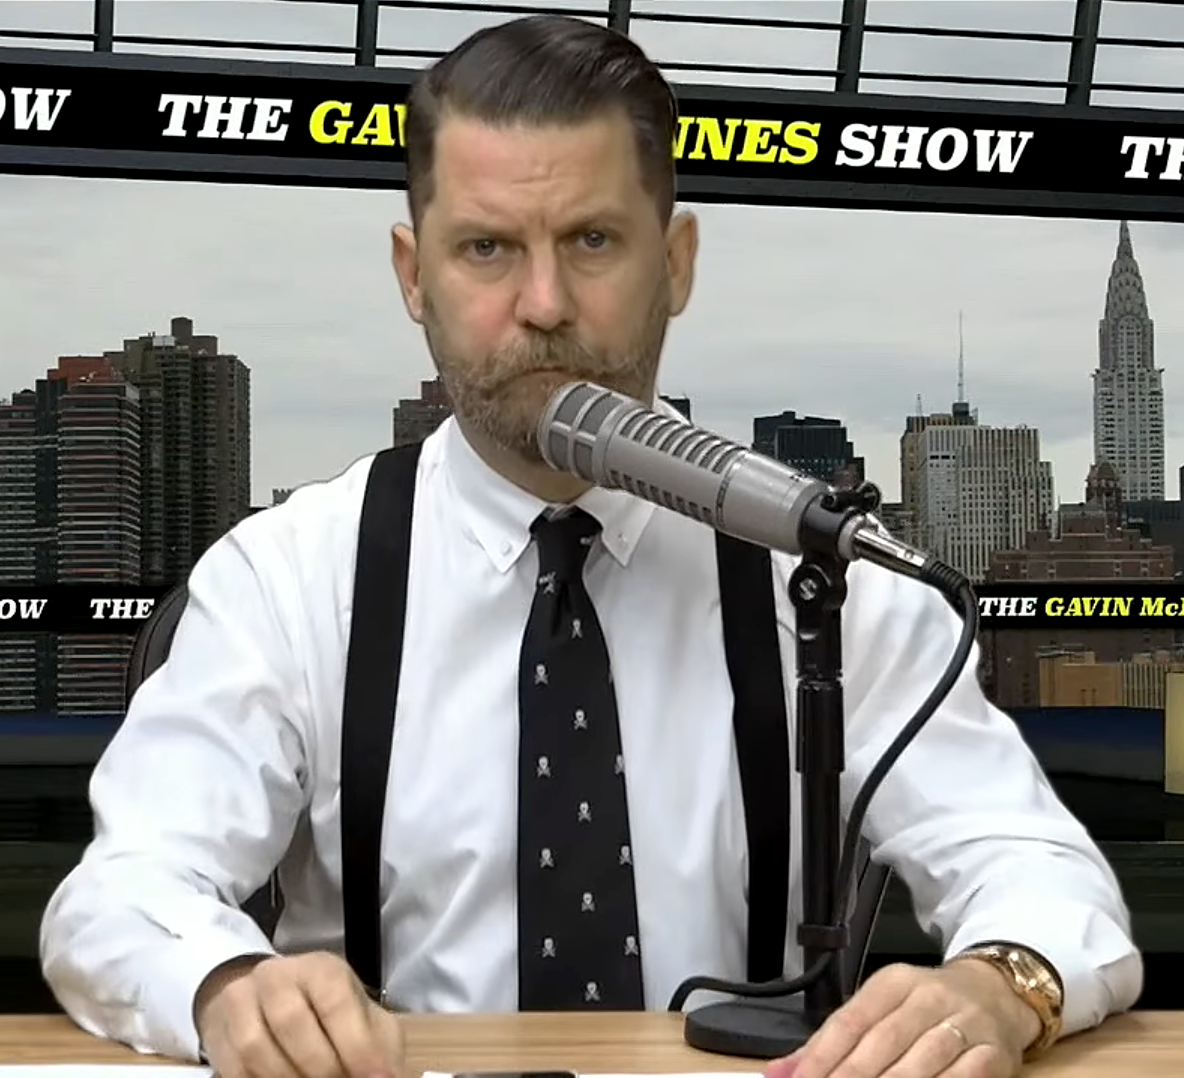 The 48-year old son of father (?) and mother(?) Gavin McInnes in 2018 photo. Gavin McInnes earned a  million dollar salary - leaving the net worth at 6 million in 2018